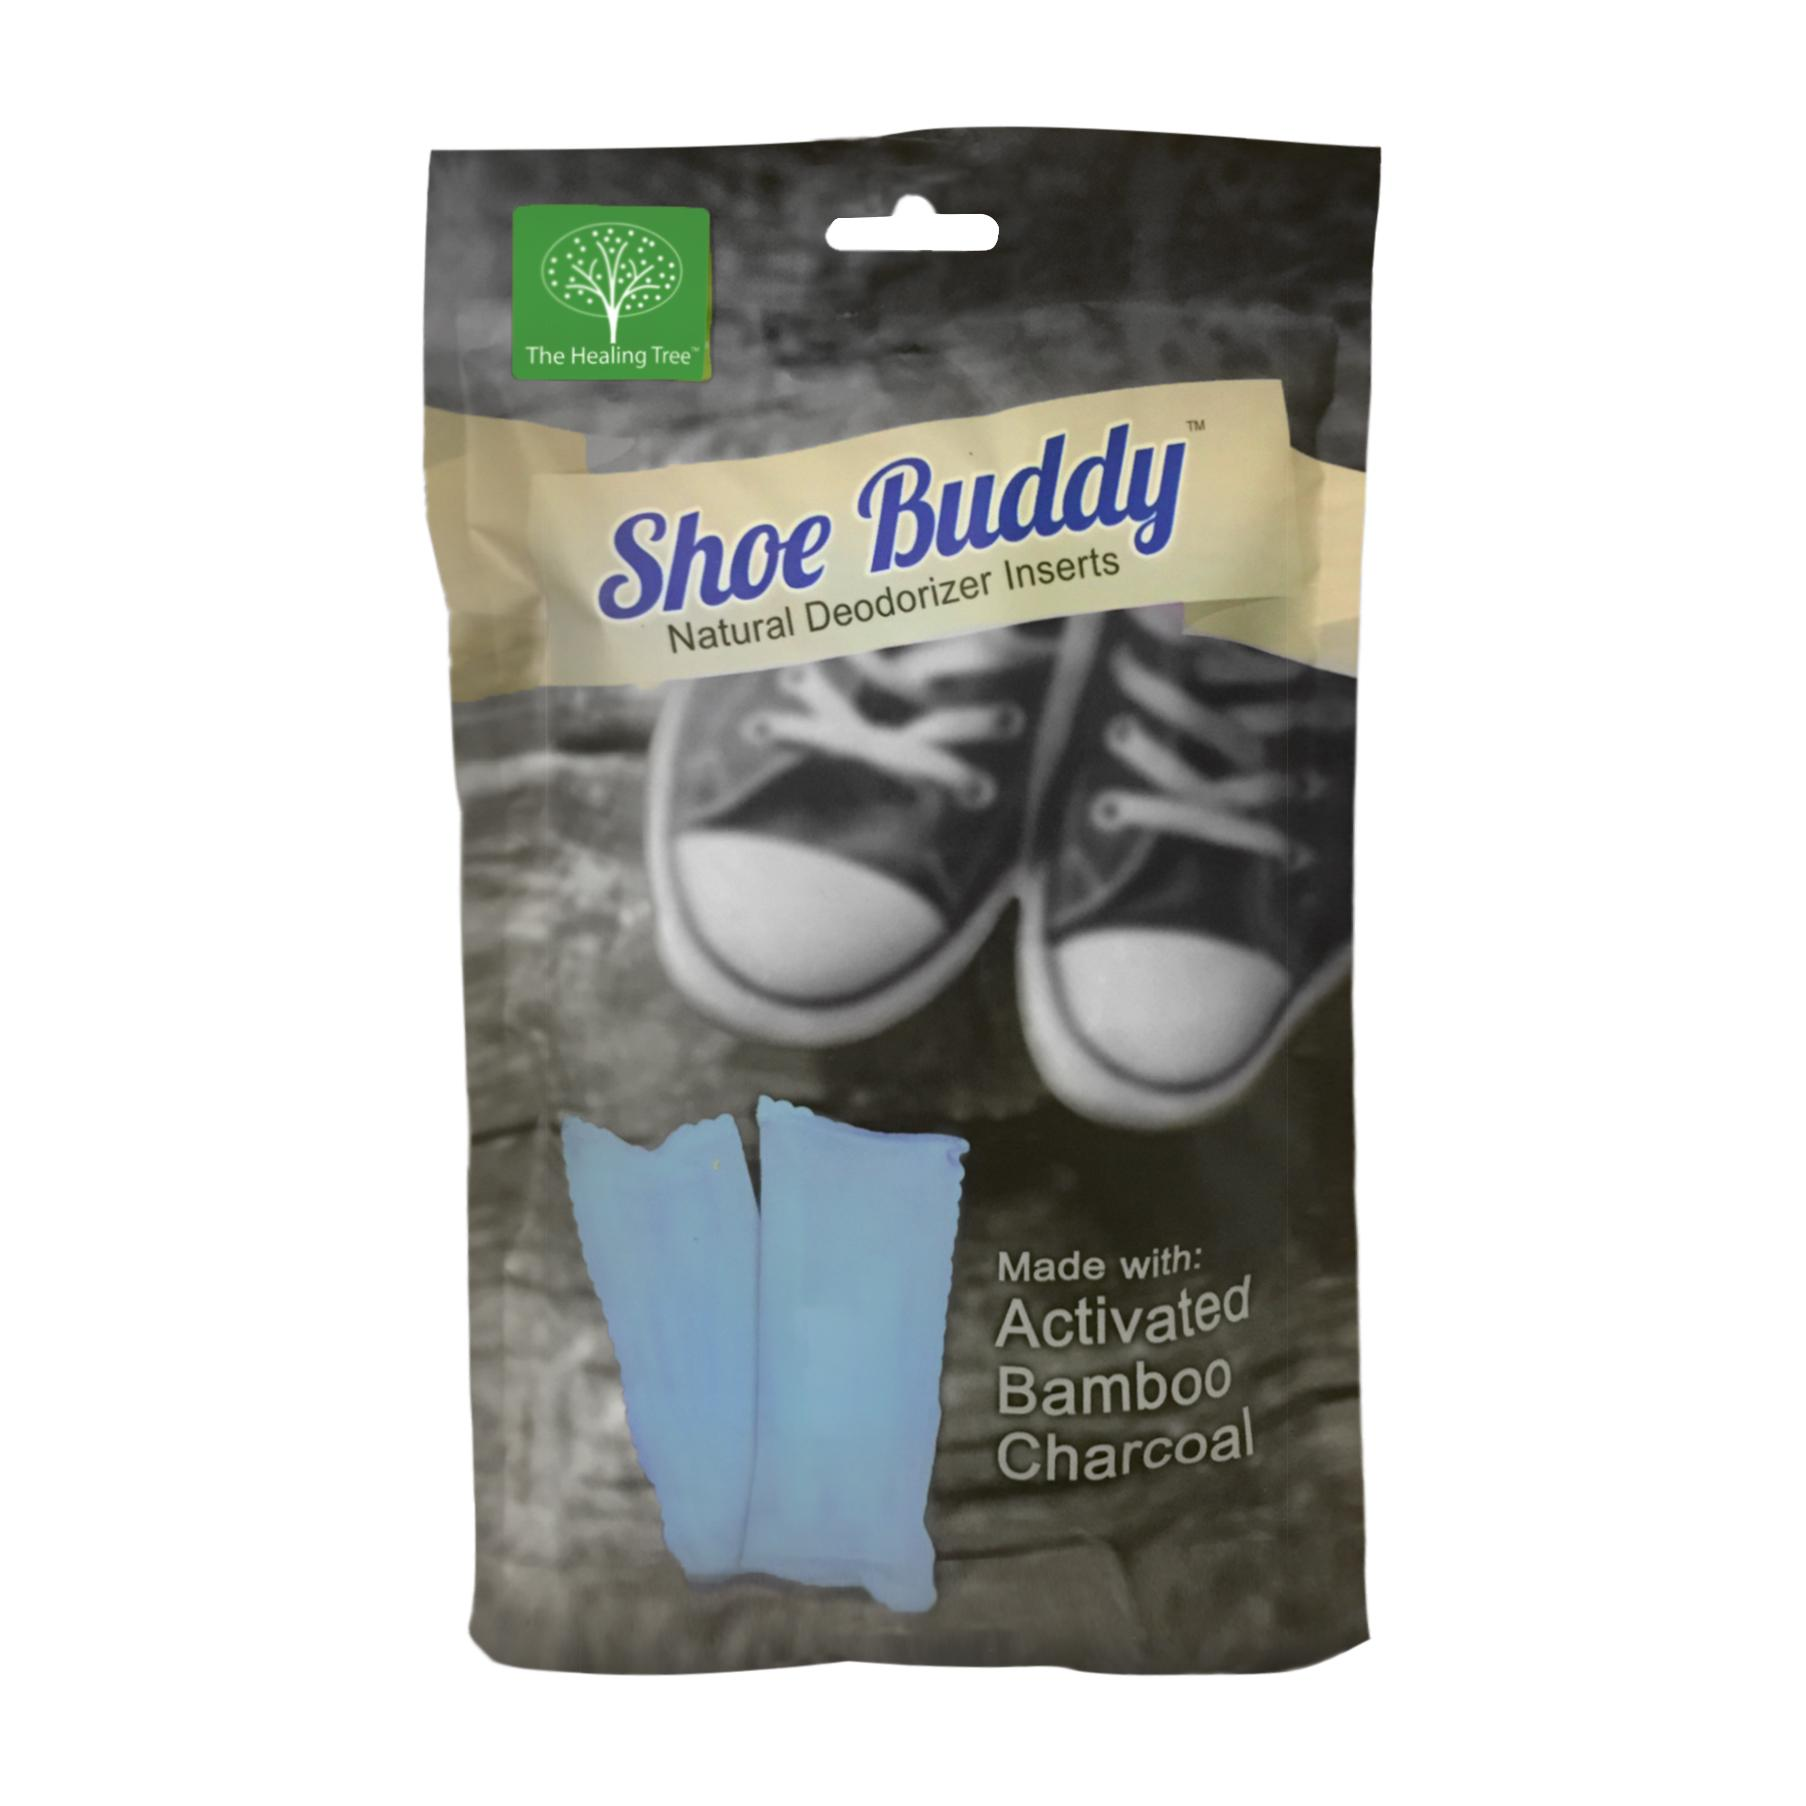 Shoe Buddy Deodorizer Inserts (Pair) - Naturally Absorbs Odor, Toxins, & Pollutants to Keep Your Shoes Fresh